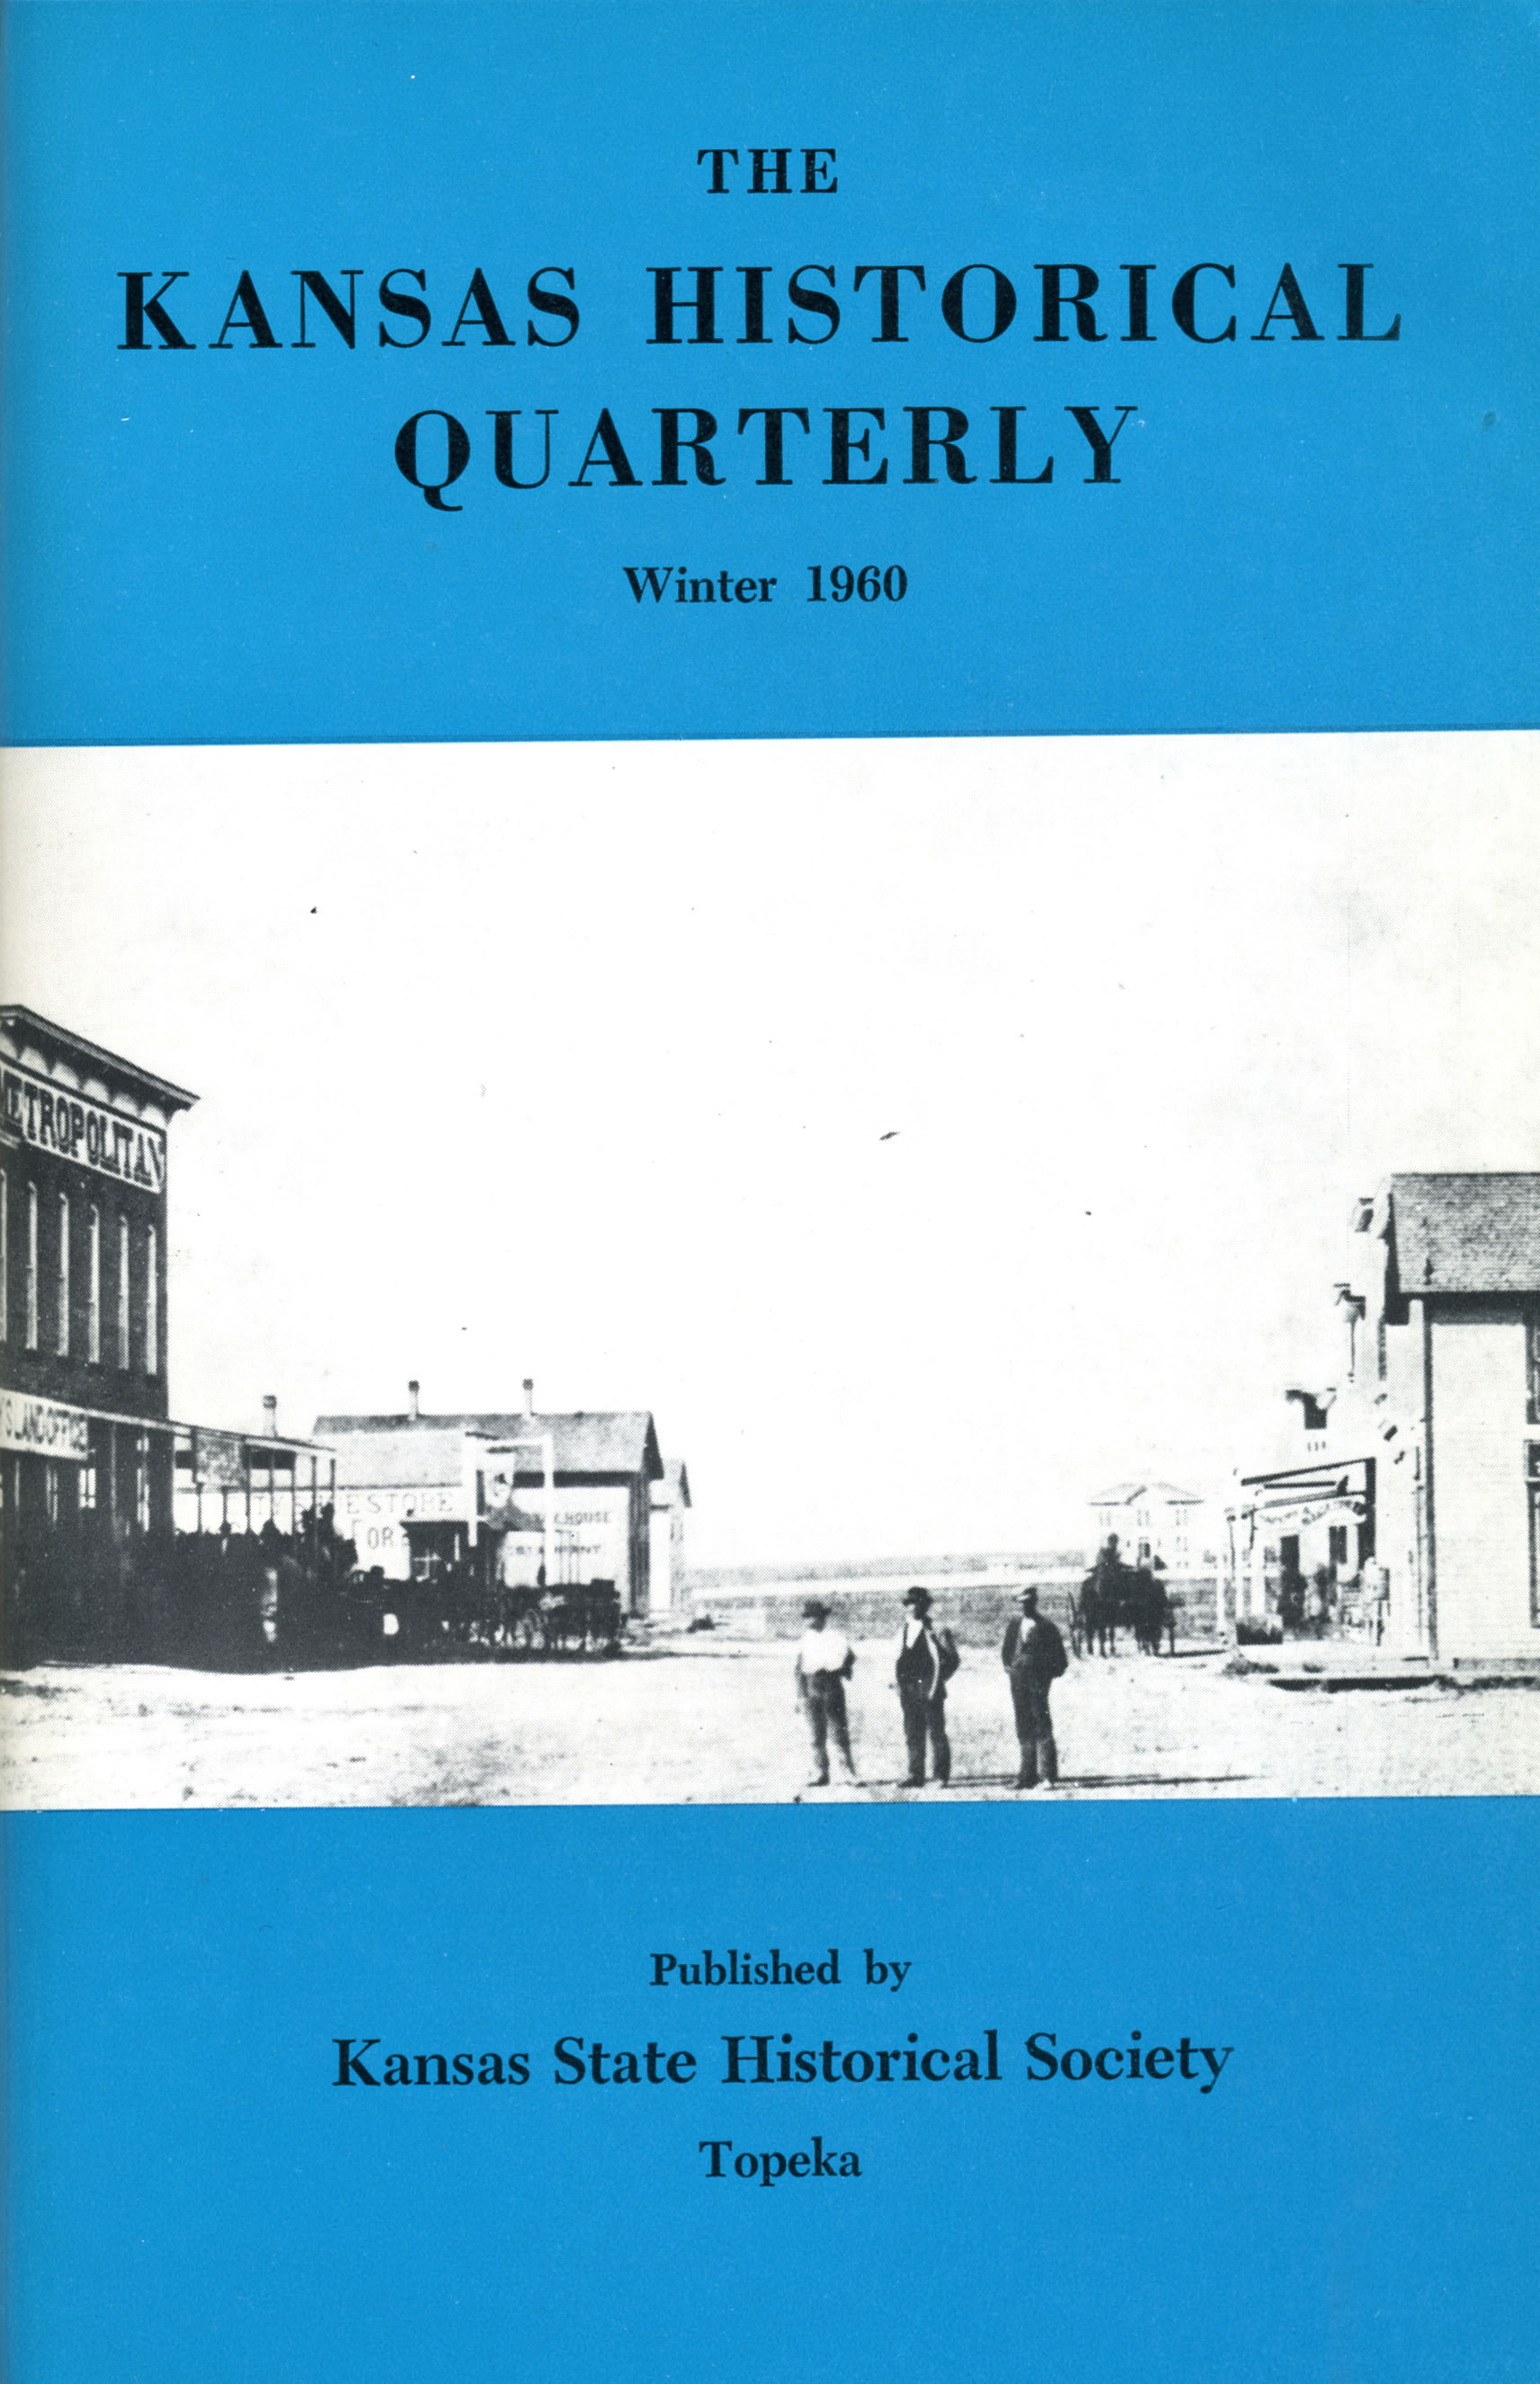 Kansas Historical Quarterly, Winter 1960